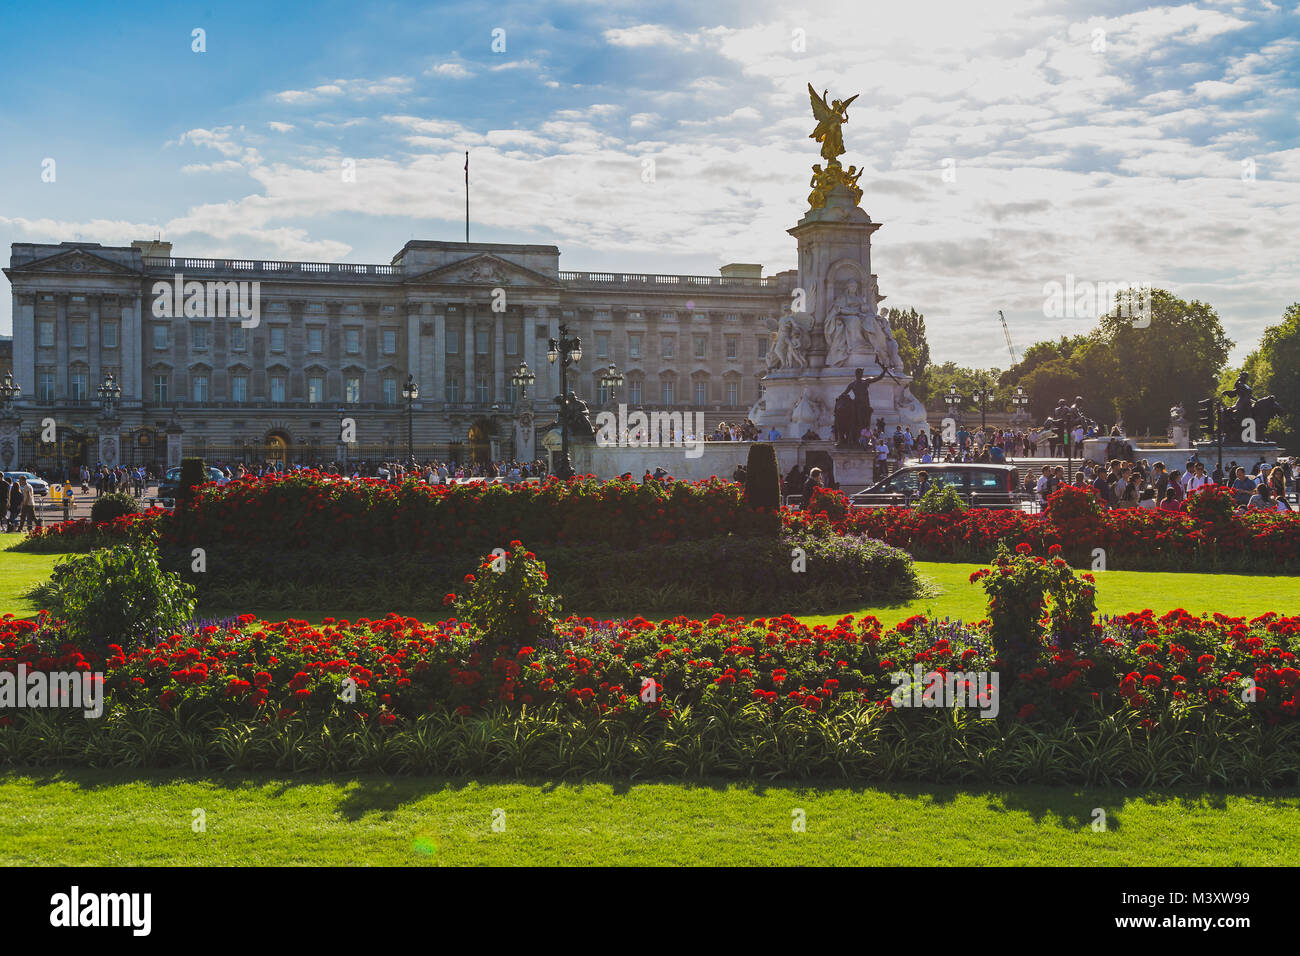 LONDON, UNITED KINGDOM - August, 15th, 2015: view of the exterior of Buckingham Palace - Stock Image